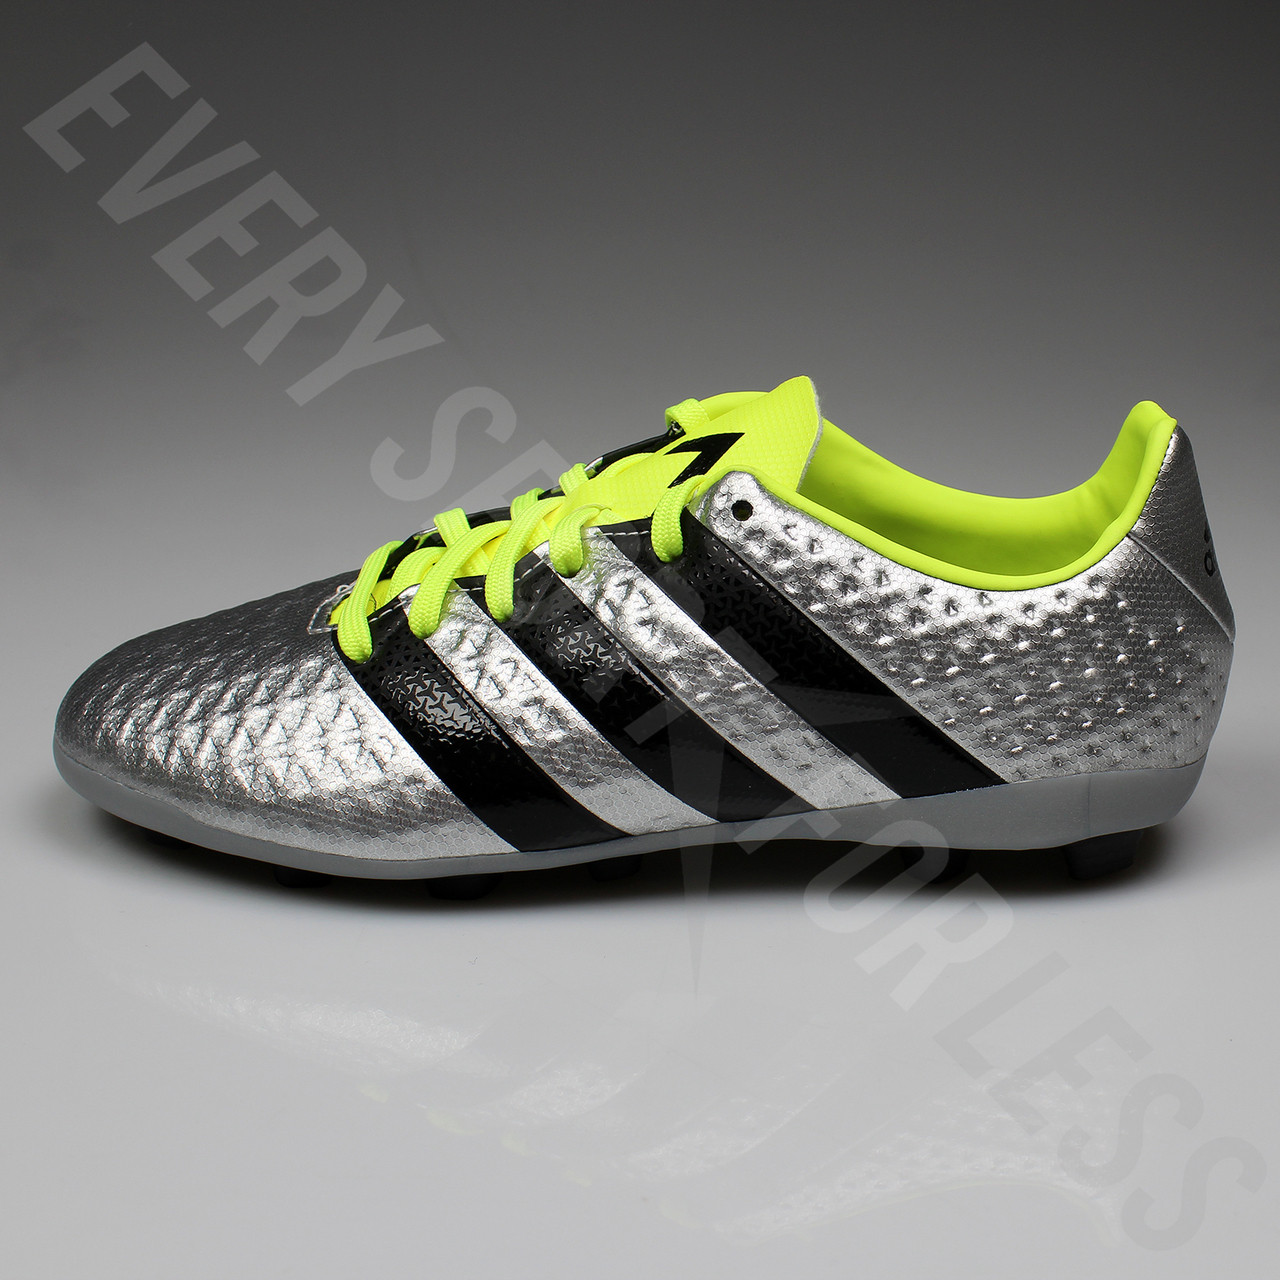 a3ba541bc9c Adidas Ace 16.4 FxG Junior Soccer Cleat S42142 - Silver Black Yellow